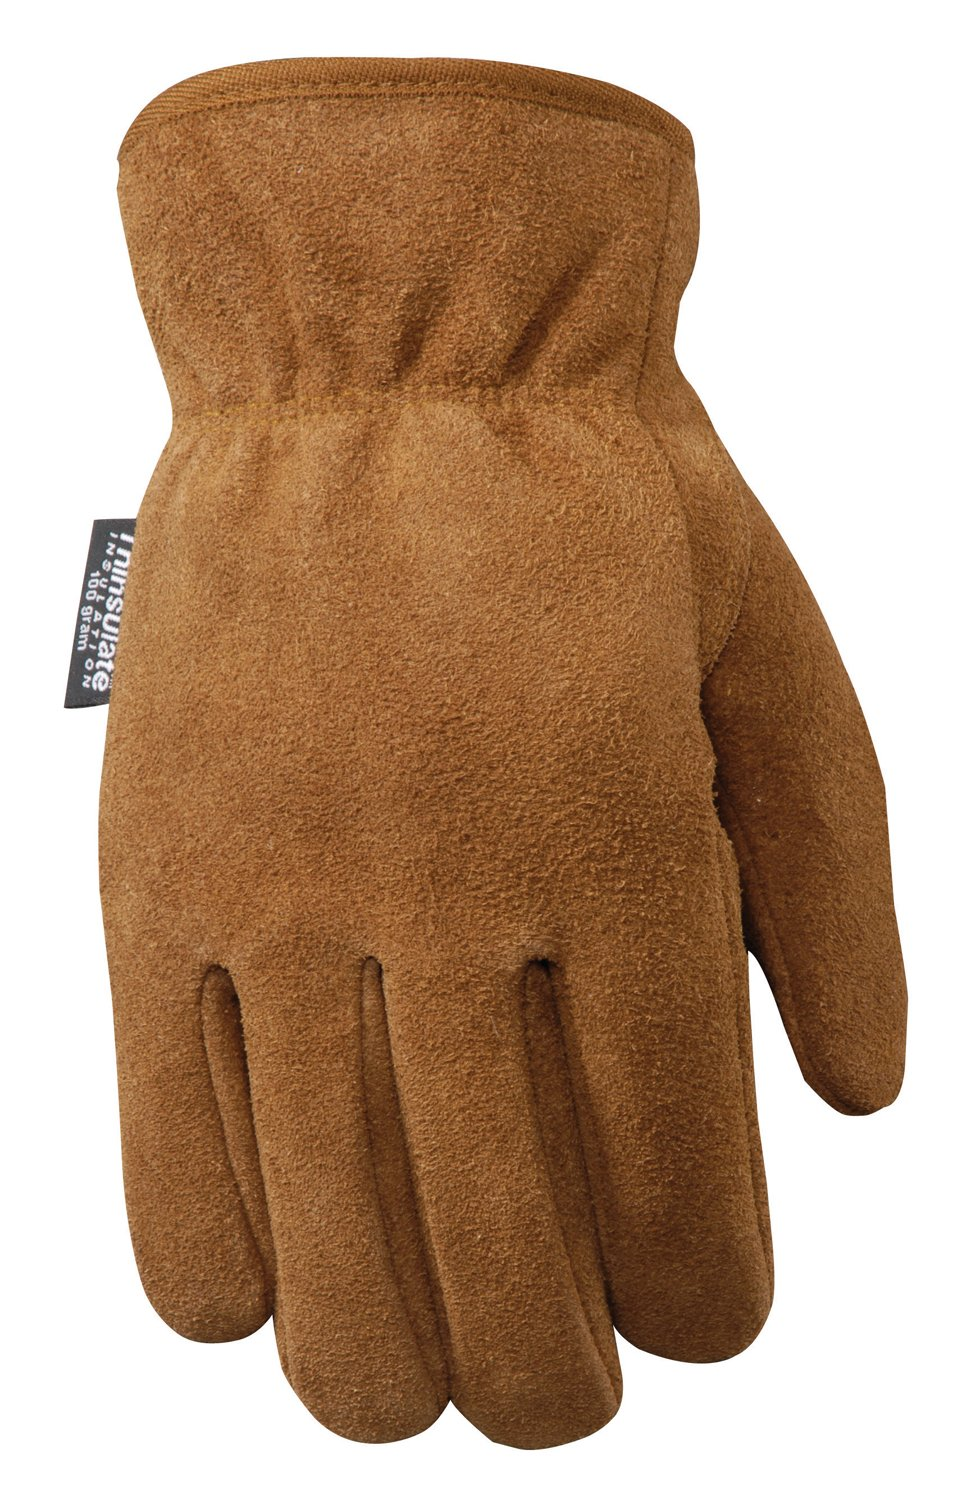 Wells Lamont Leather Work Gloves with 100-gram Thinsulate Insulation, Split Cowhide